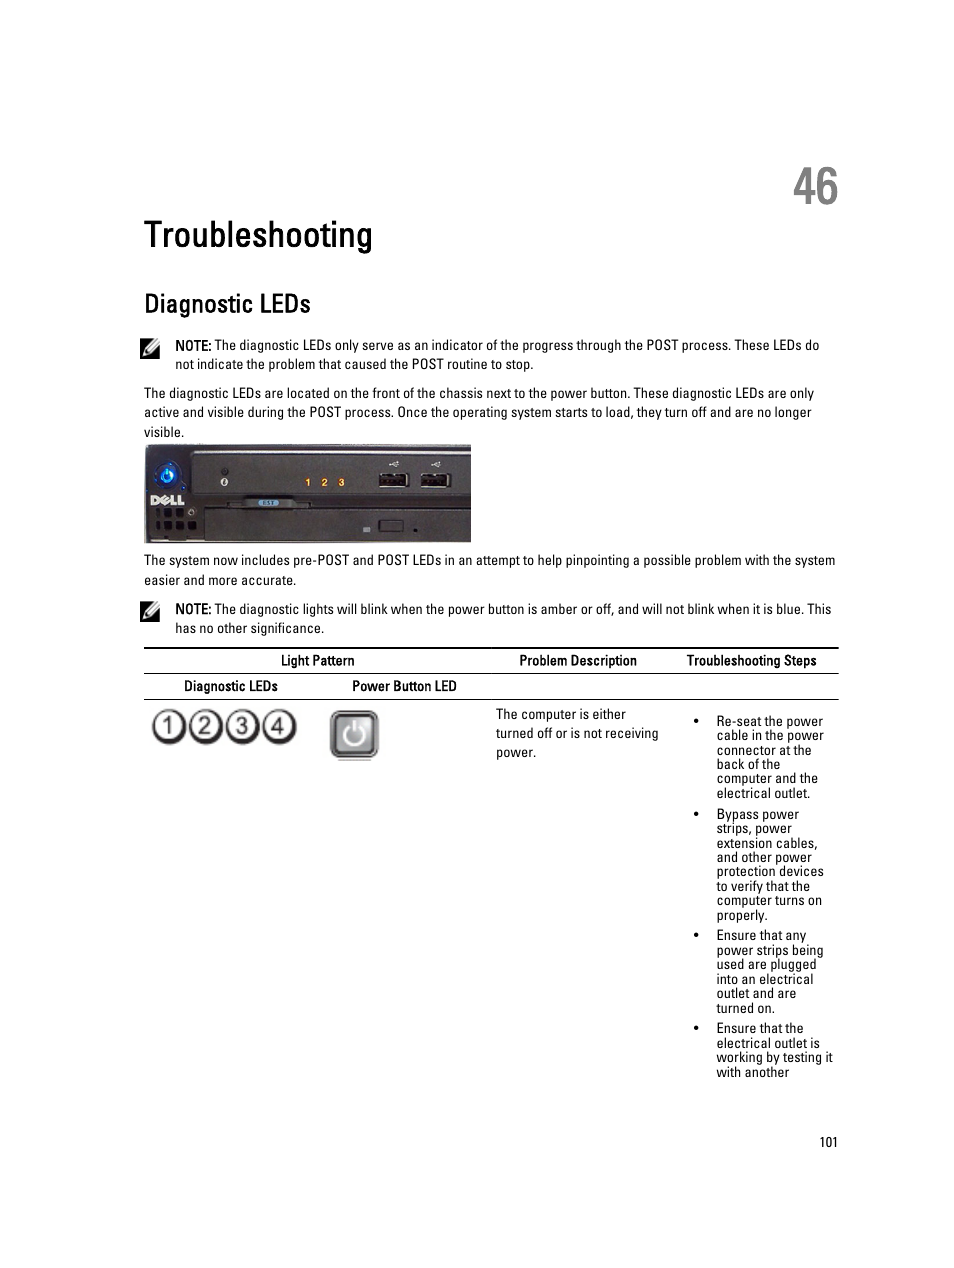 Troubleshooting, Diagnostic leds, 46 troubleshooting | Dell